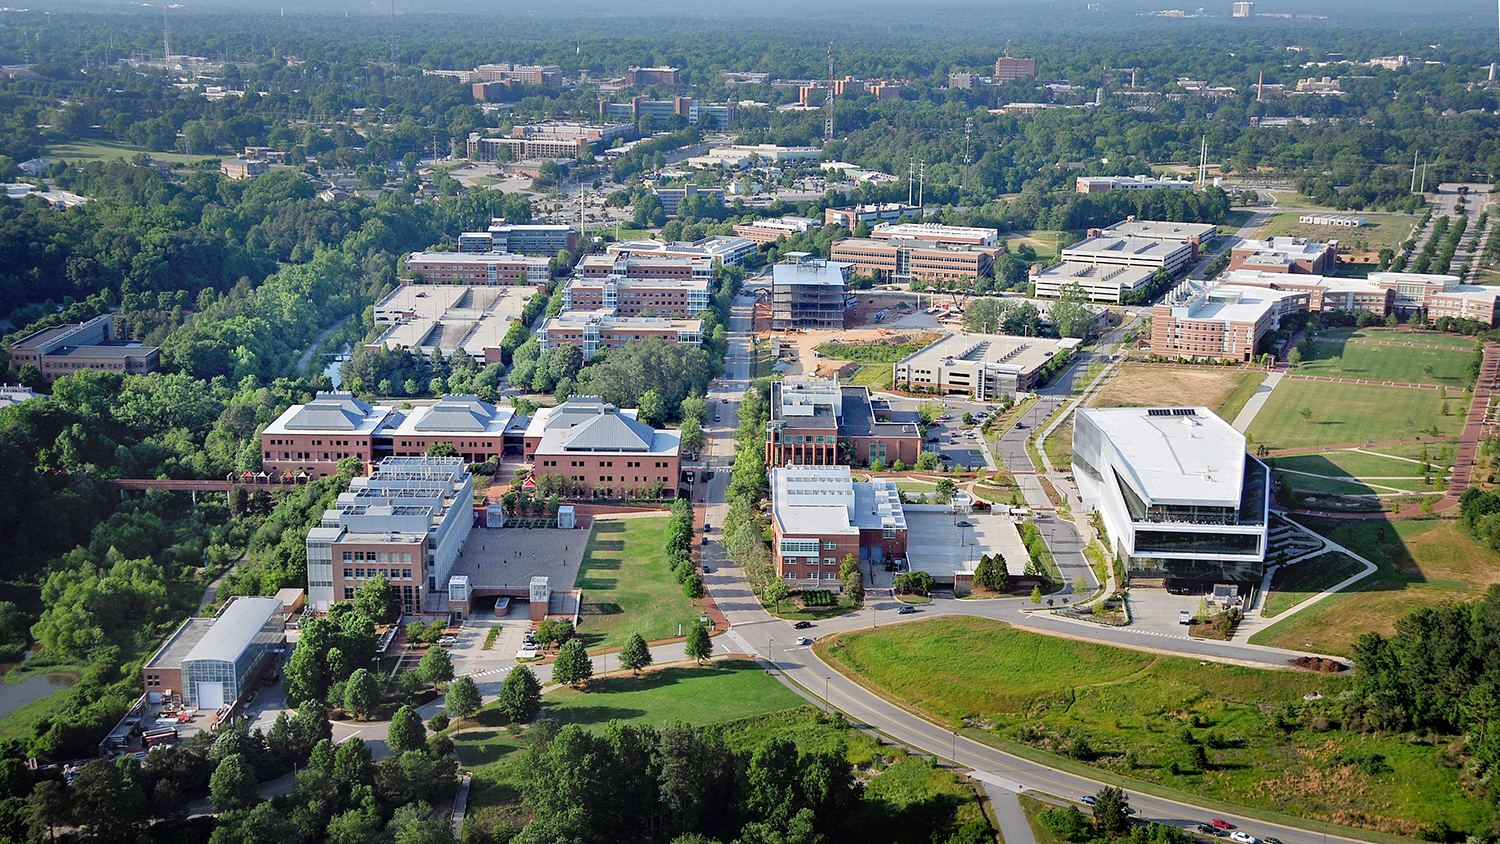 Aerial view of Centennial Campus, looking north towards main campus